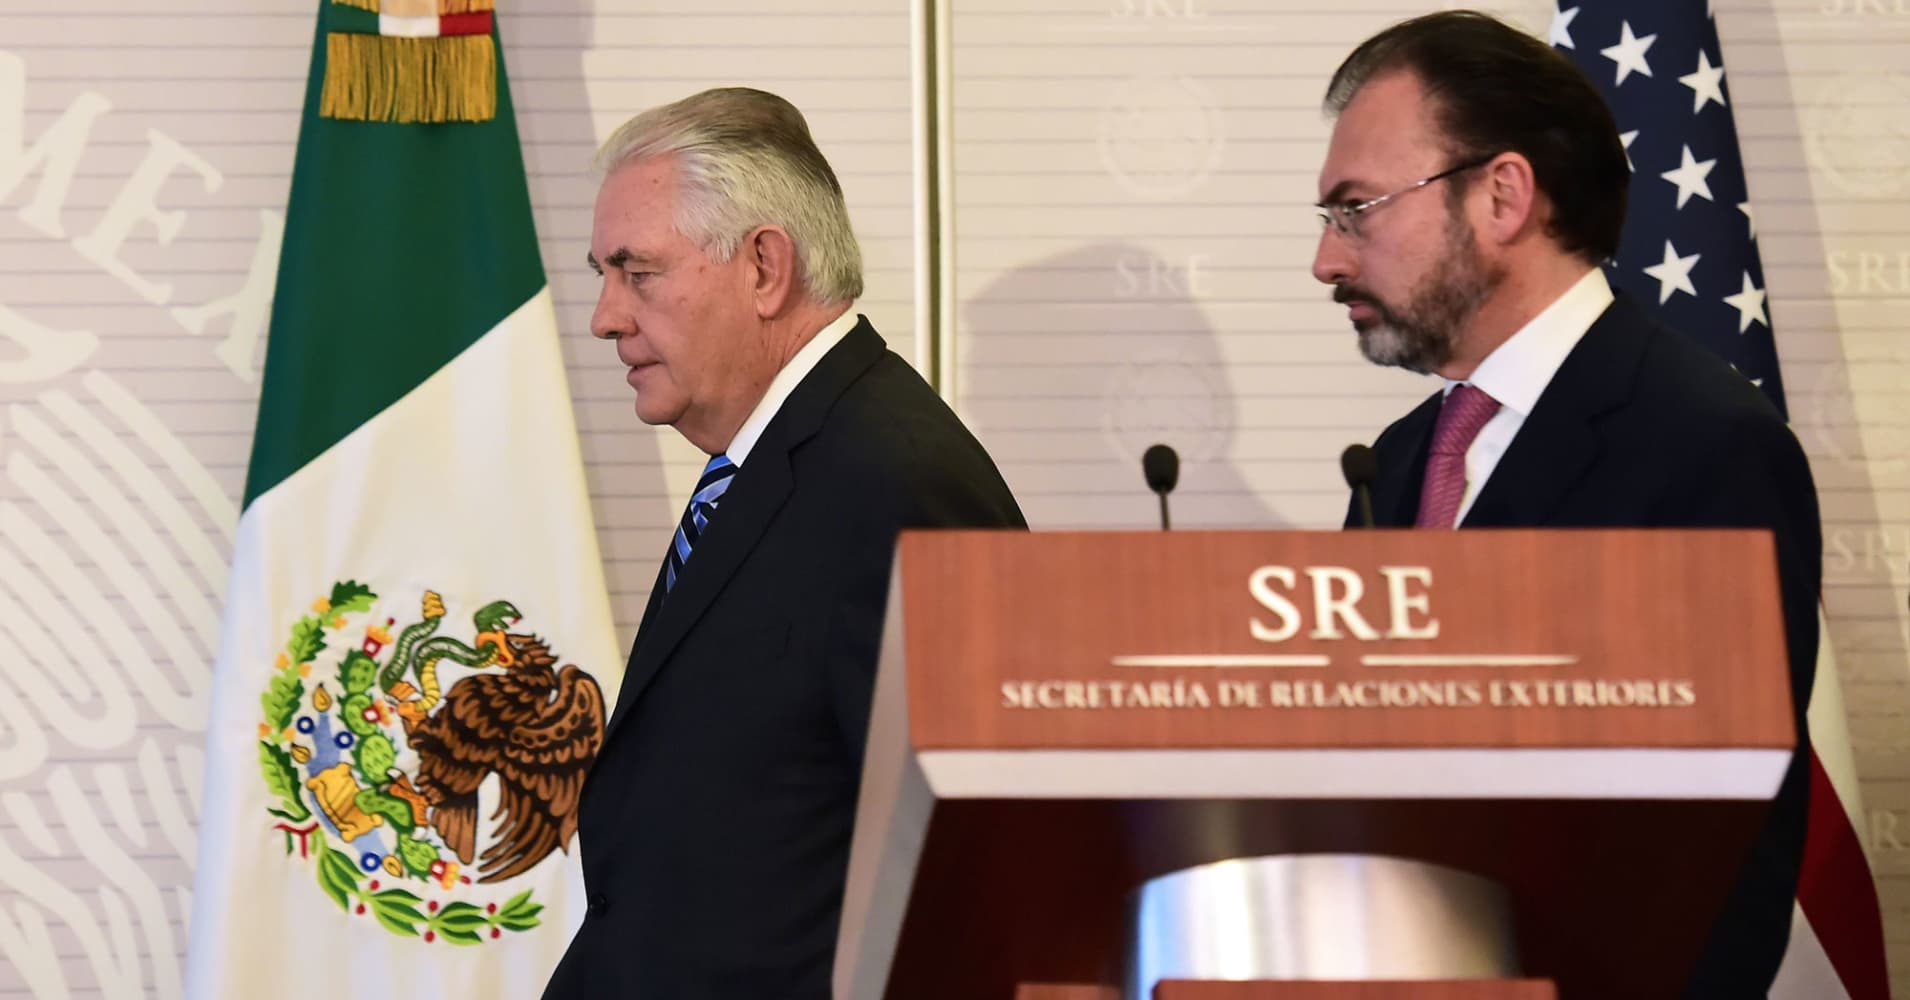 Tillerson pledges 'no mass deportations' in talks with Mexico's leaders